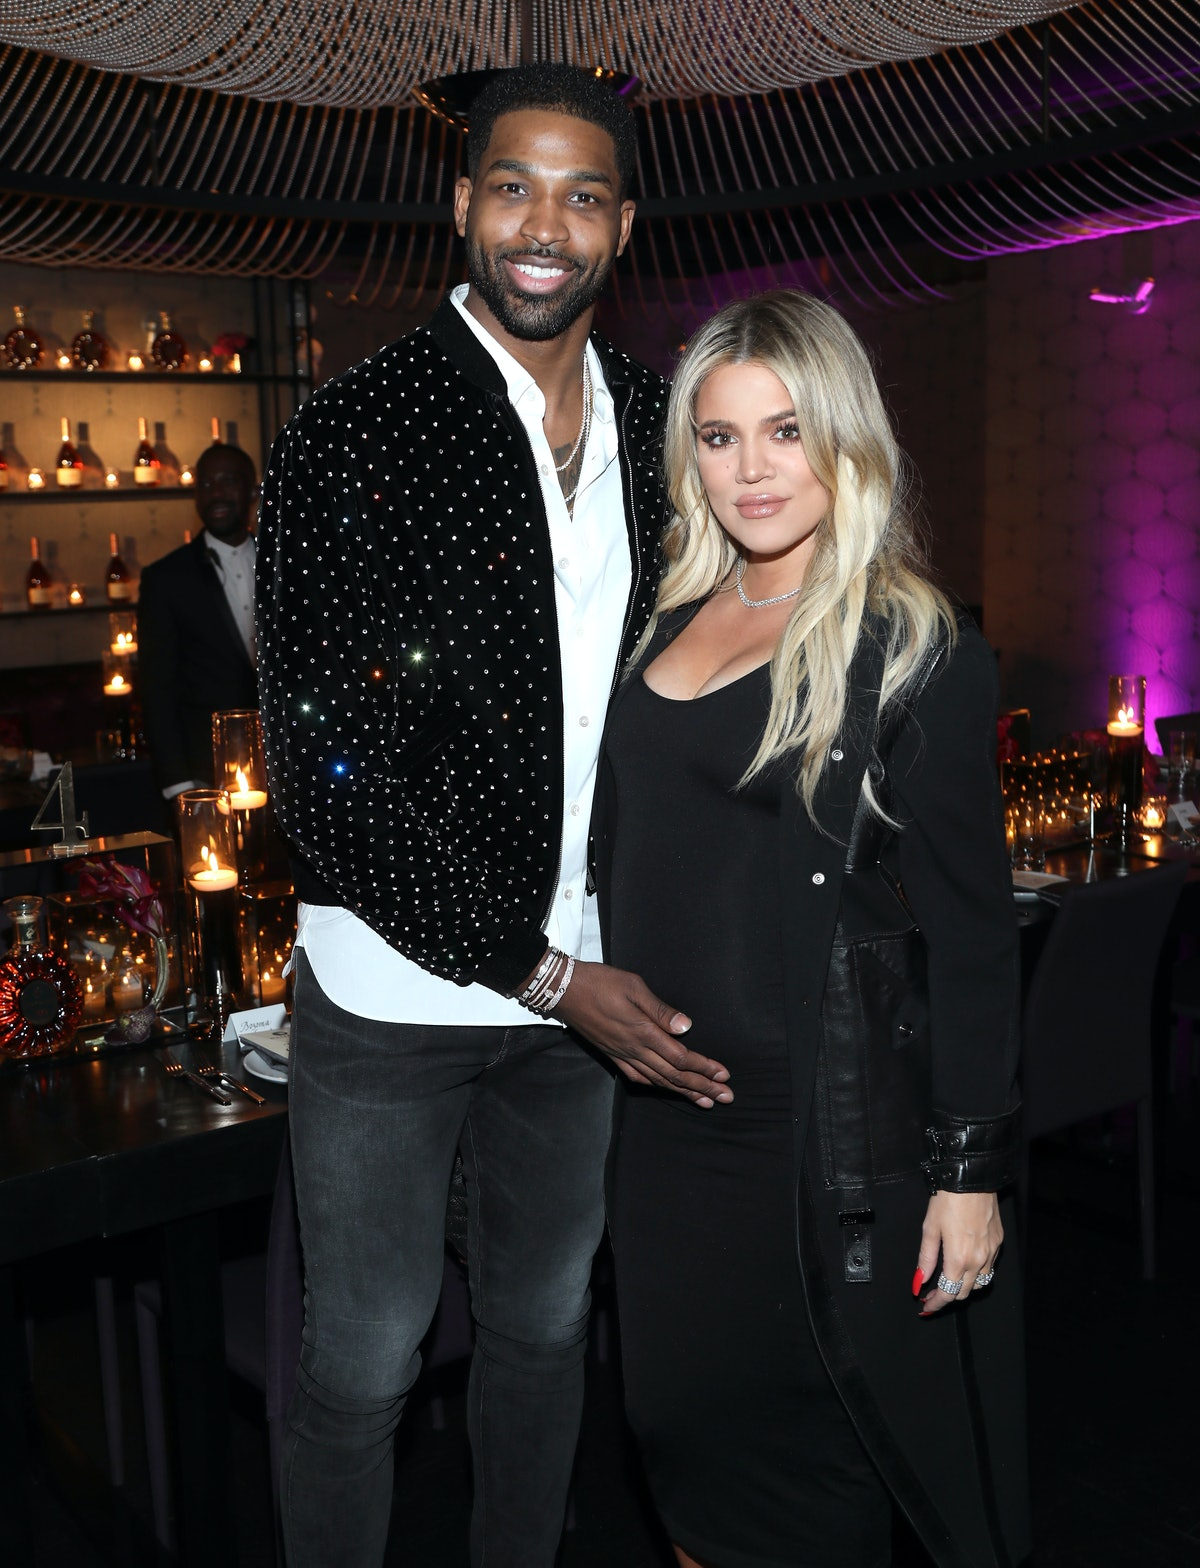 Khloé Kardashian and Tristan Thompson's astrological compatibility explains their breakup